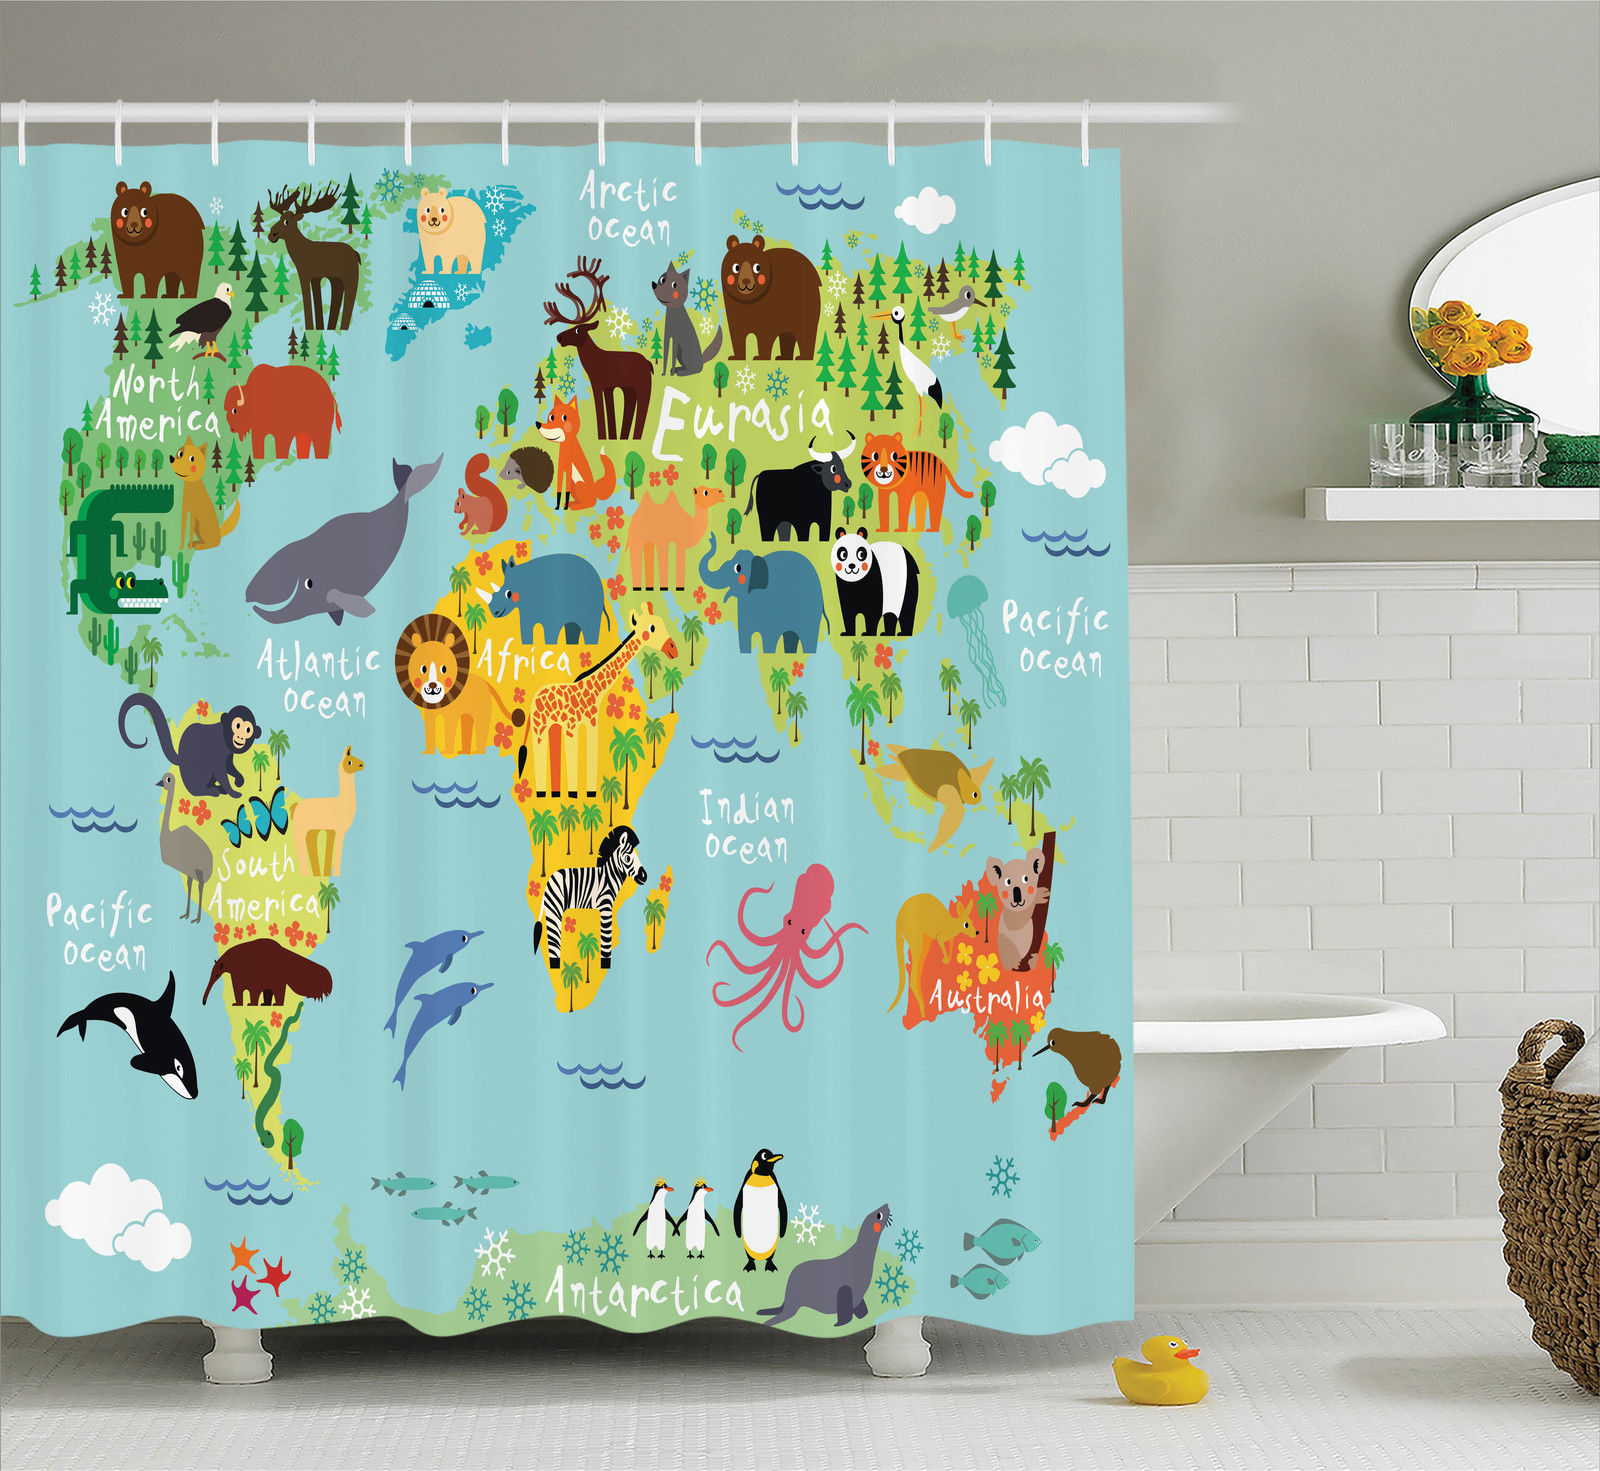 Marvelous Wanderlust Decor Animal Map Of The World For Children And Kids Cartoon  Mountains Forests, Bathroom